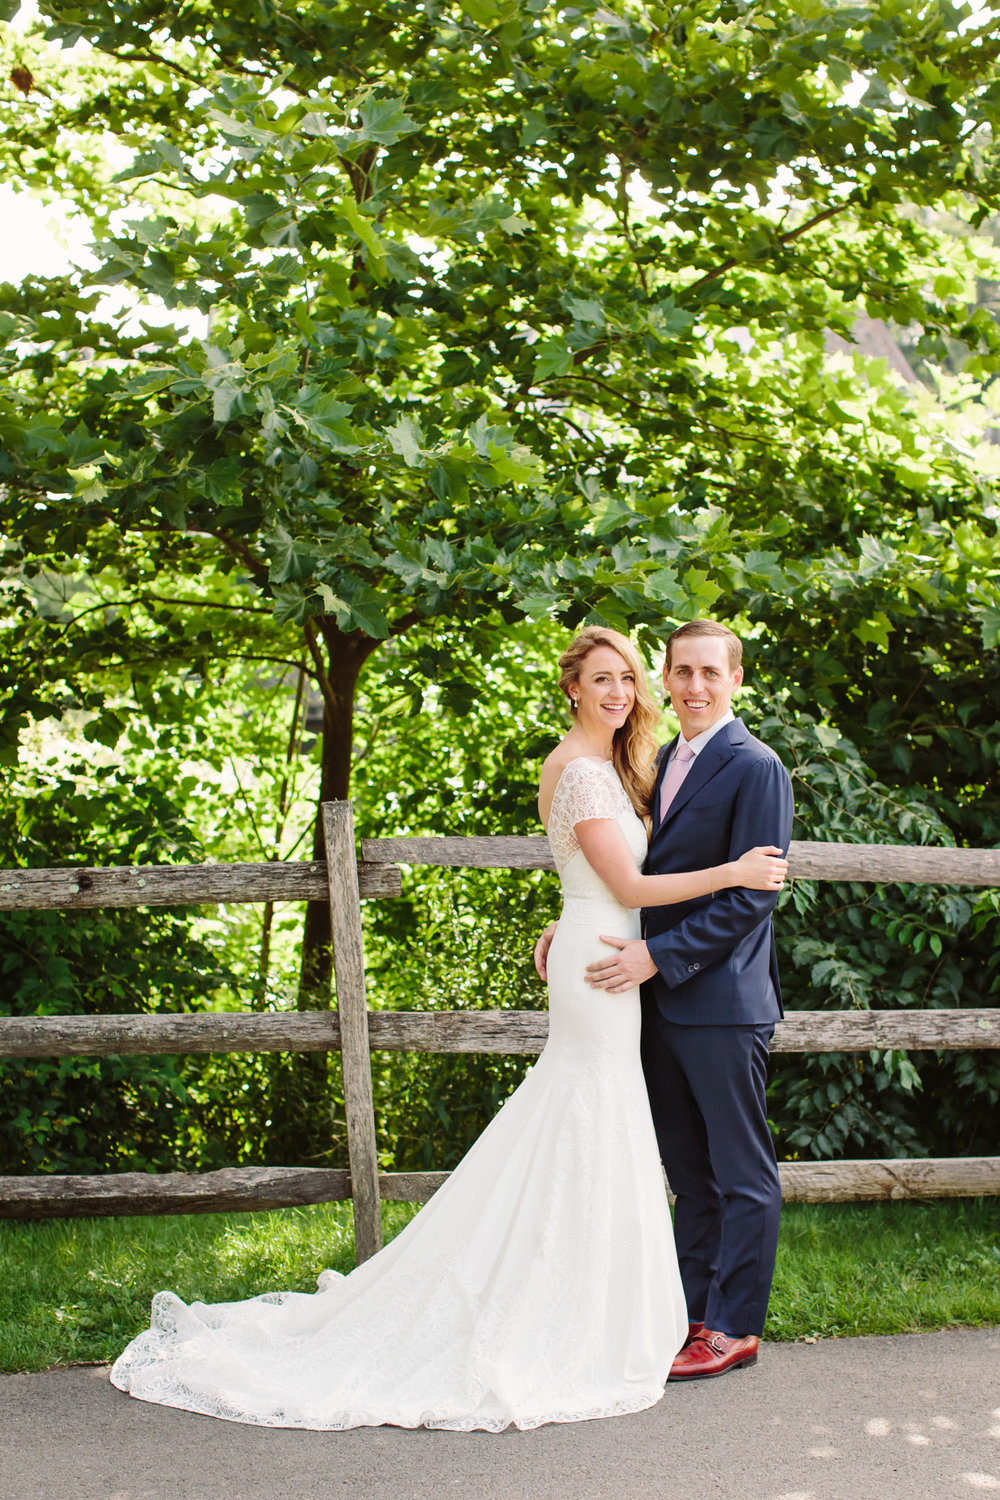 19_Jessica_Ted_Blue_Hill_Stone_Barns_Wedding_Pocantico_NY_Tanya_Salazar_Photography_085.jpg